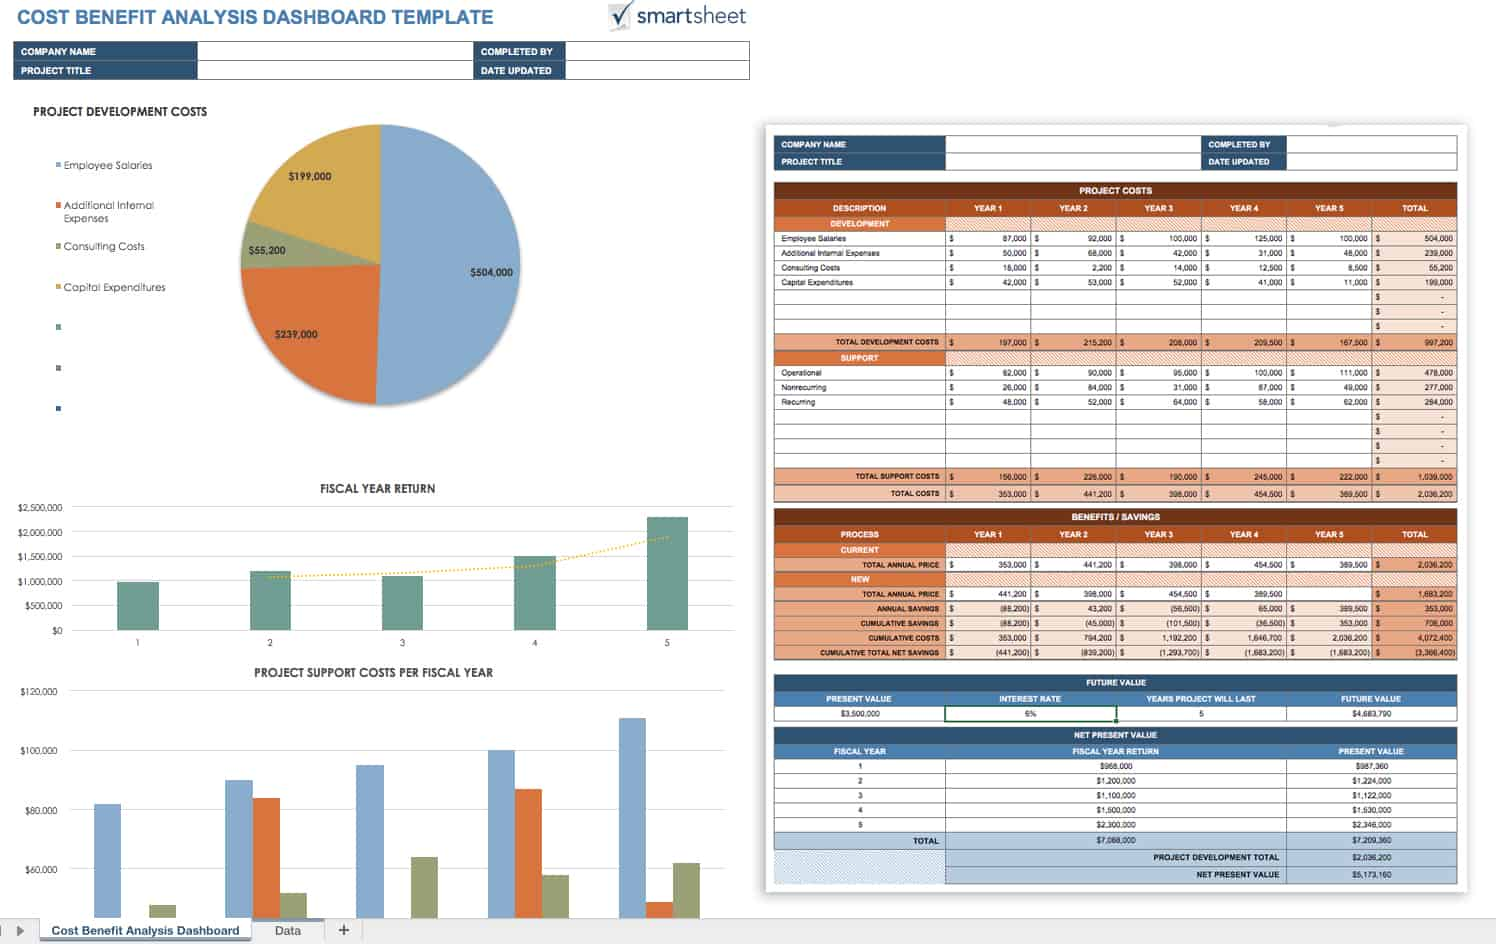 cost benefit analysis templates smartsheet cost benefit analysis dashboard template for excel